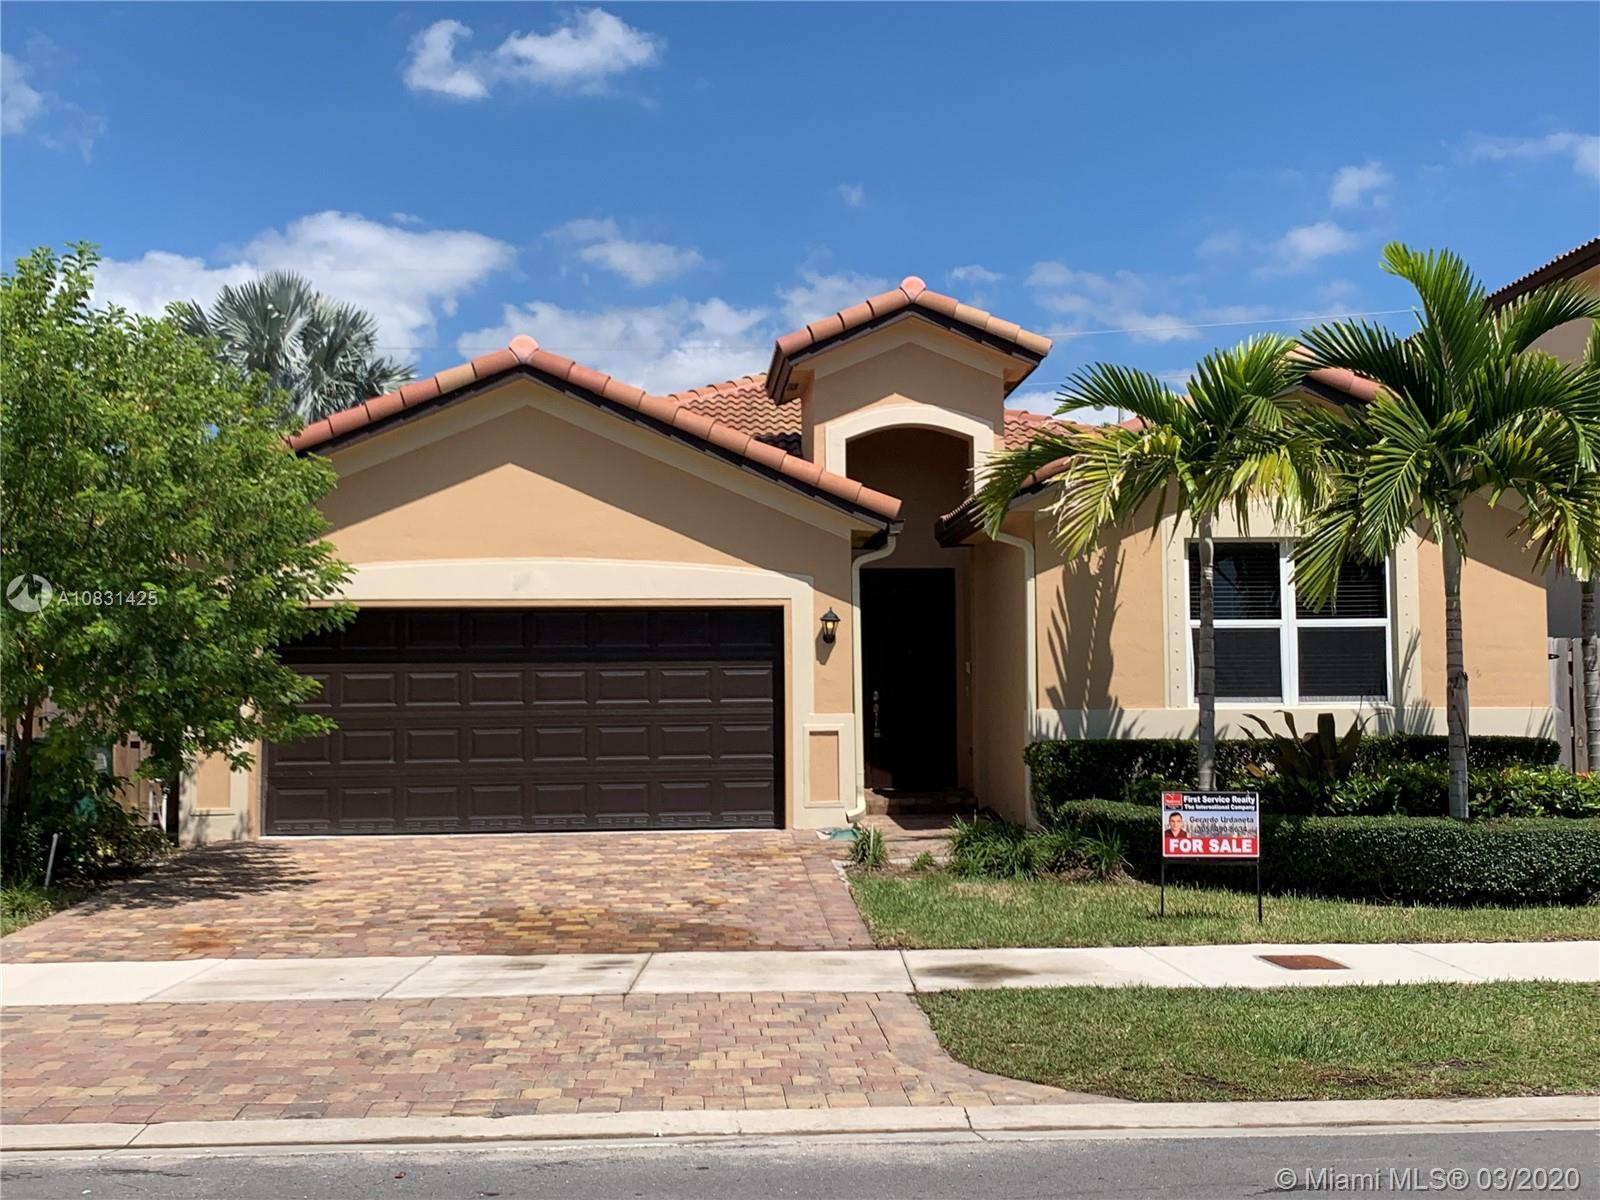 11851 SW 248th Ter, Homestead, FL 33032 - Homestead, FL real estate listing